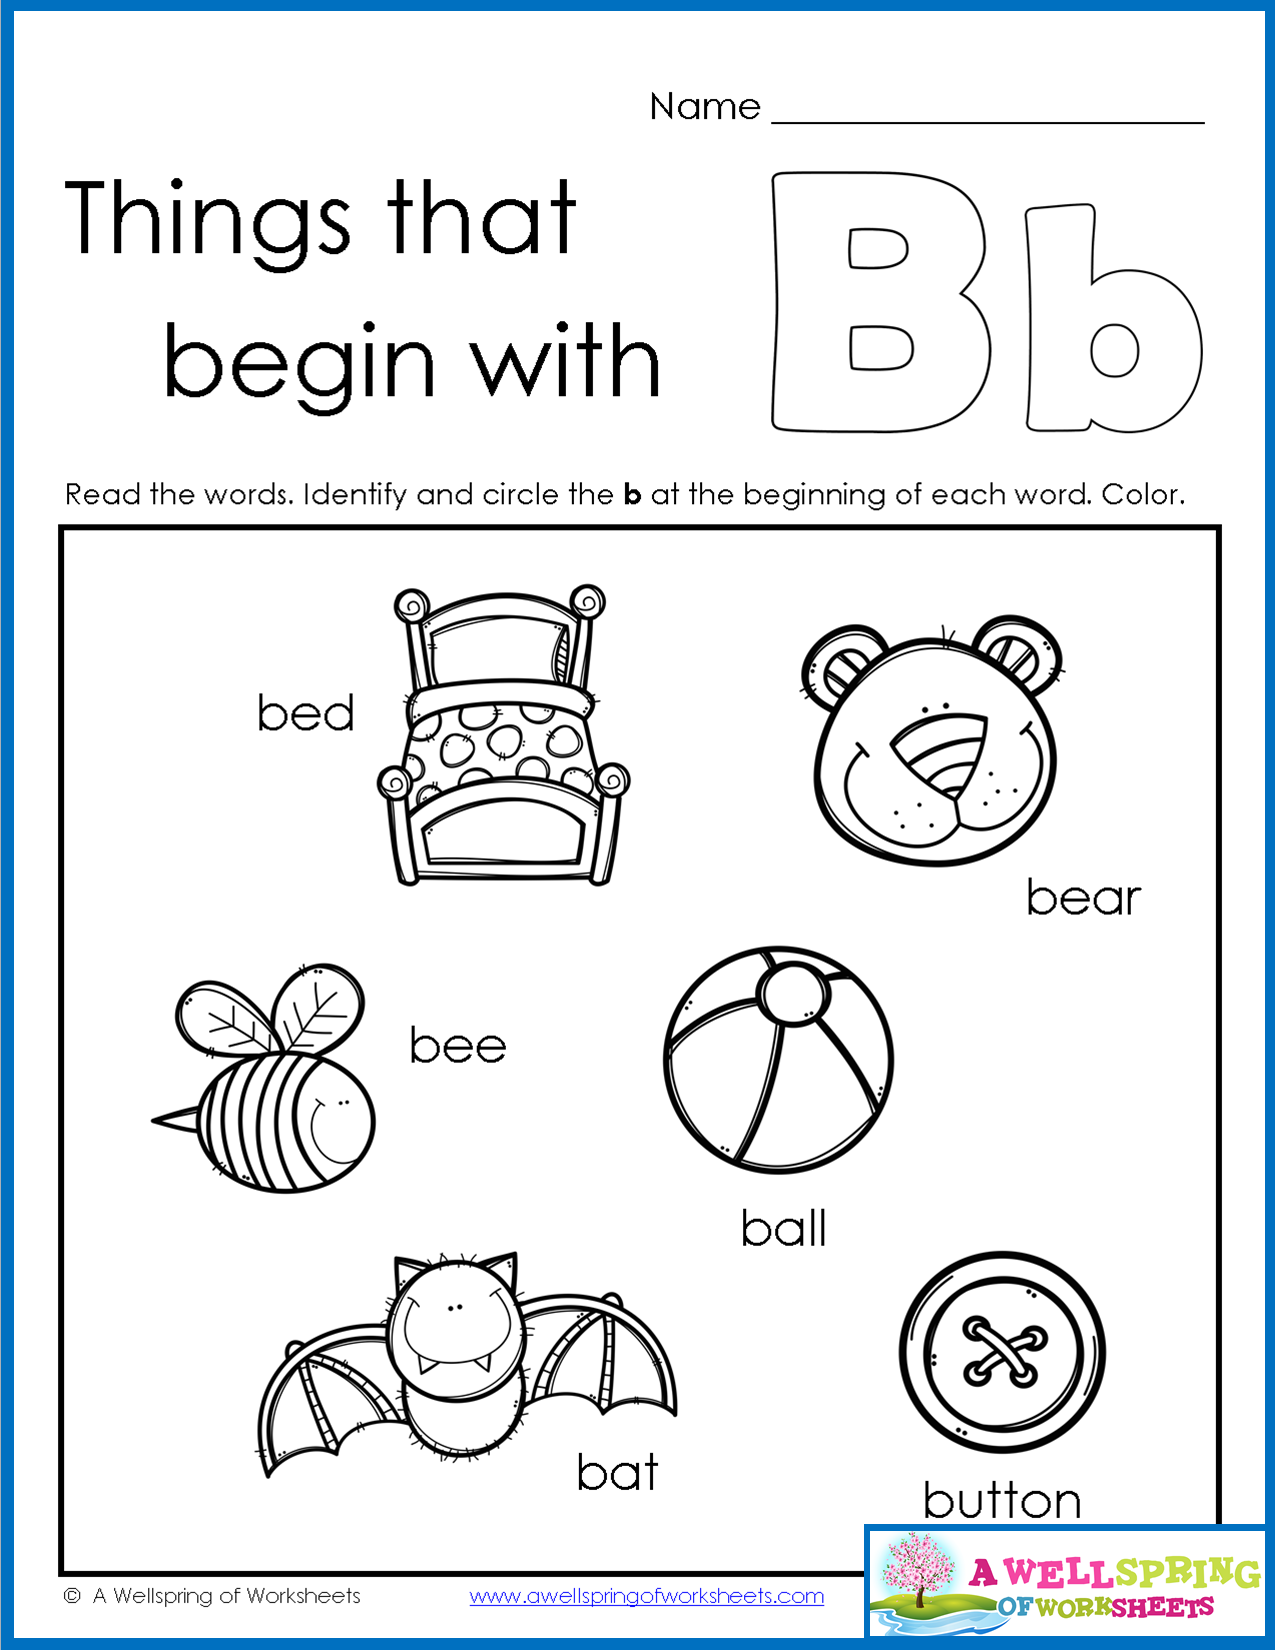 Things That Begin With A Z Worksheets With Images